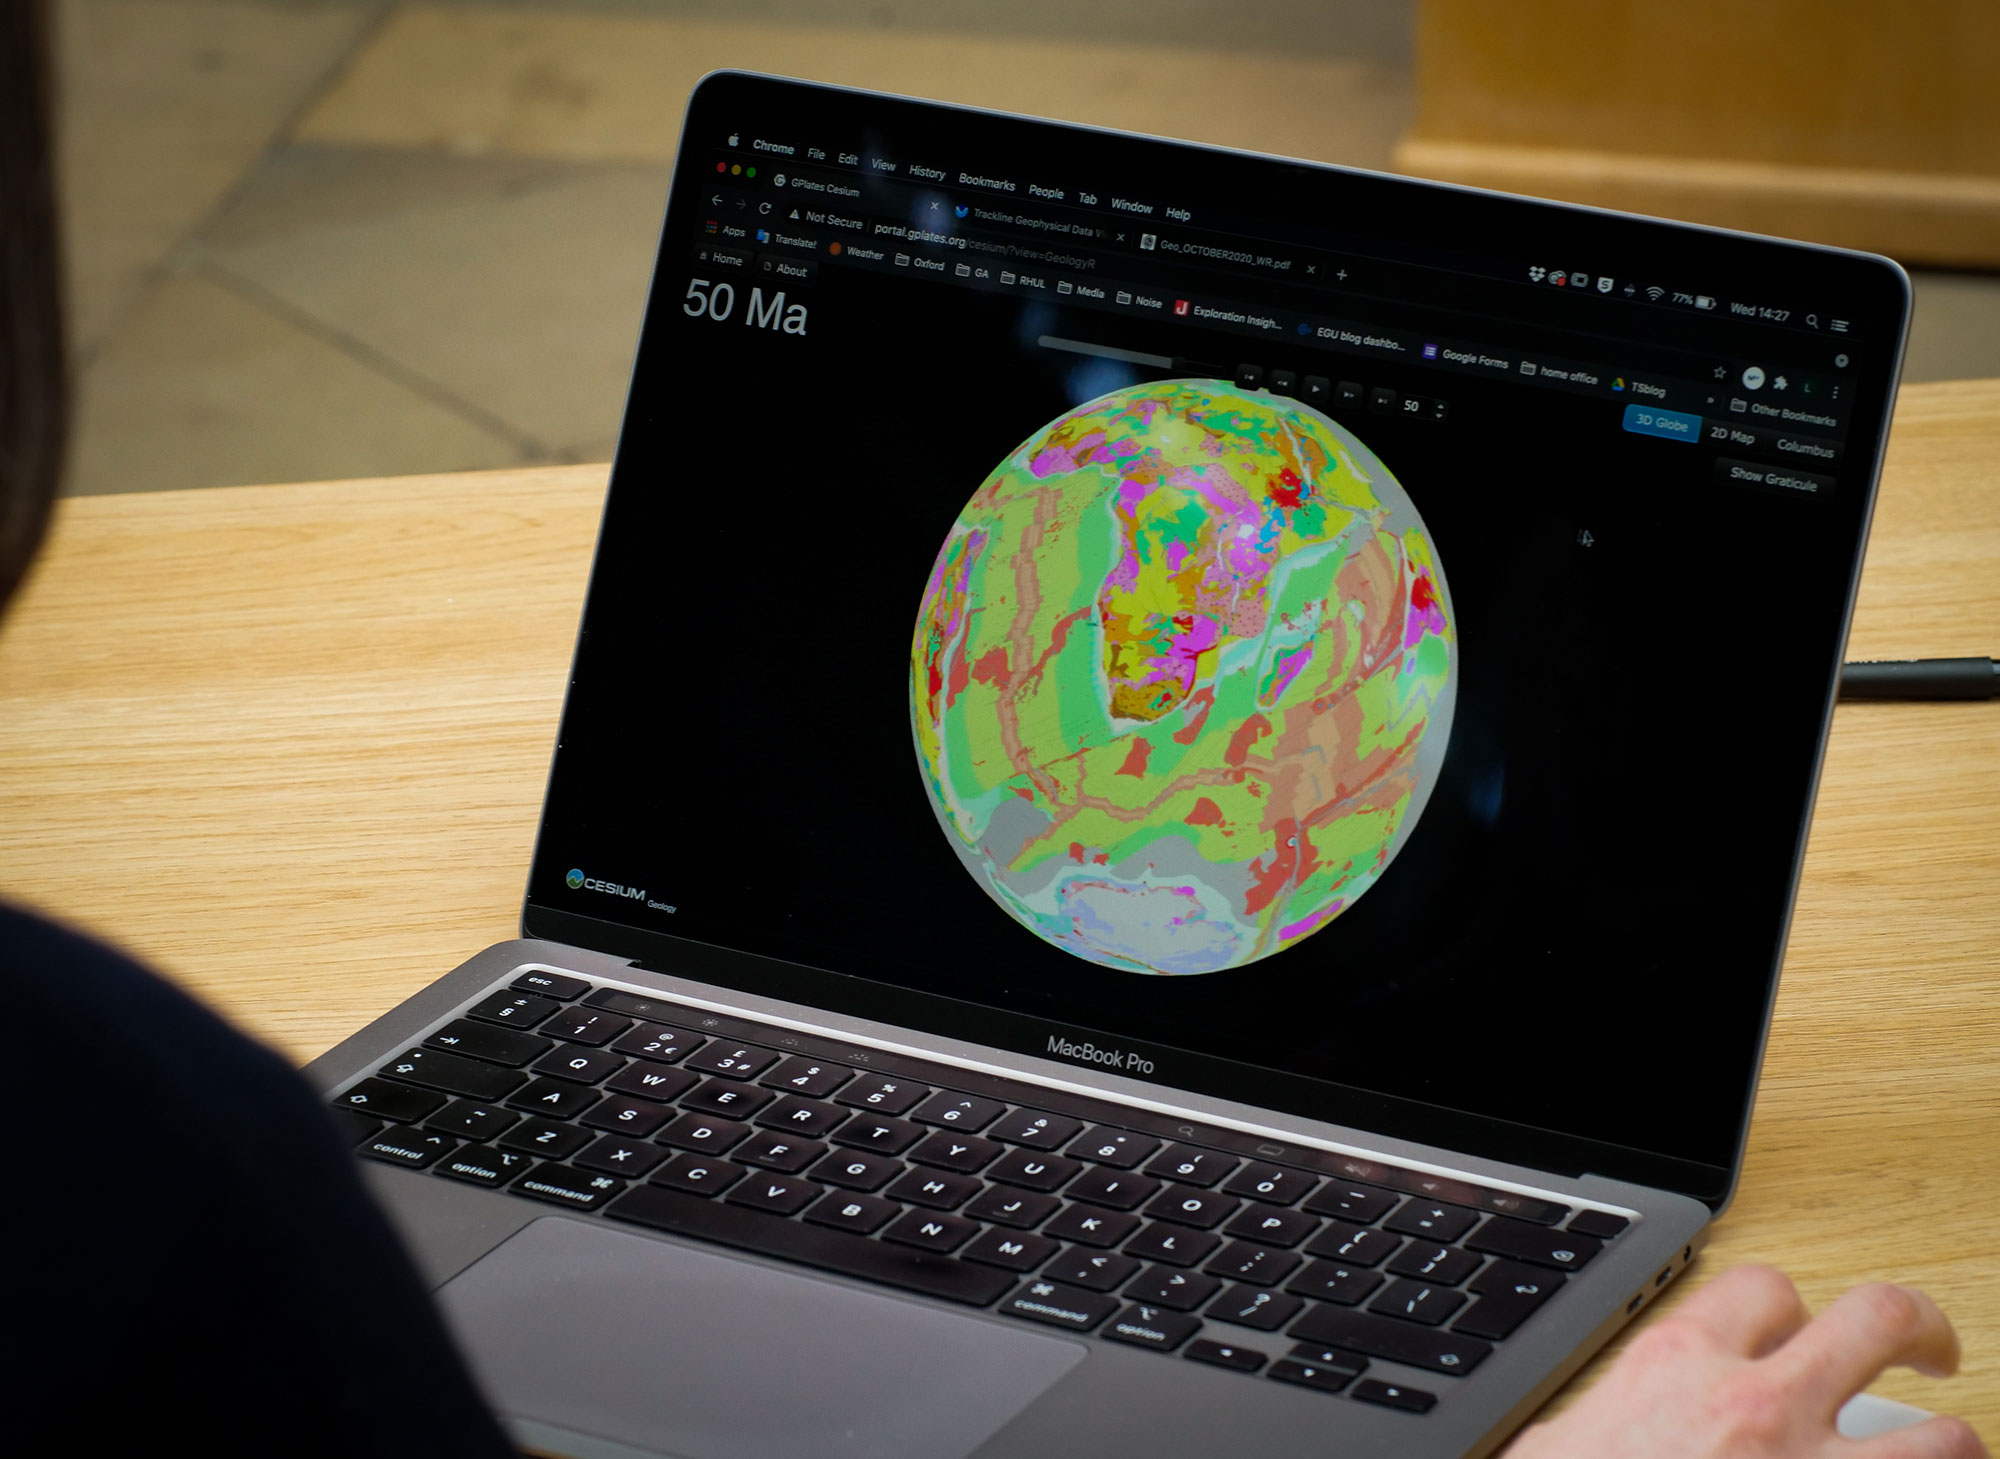 A laptop screen showing a colorful map of Earth.